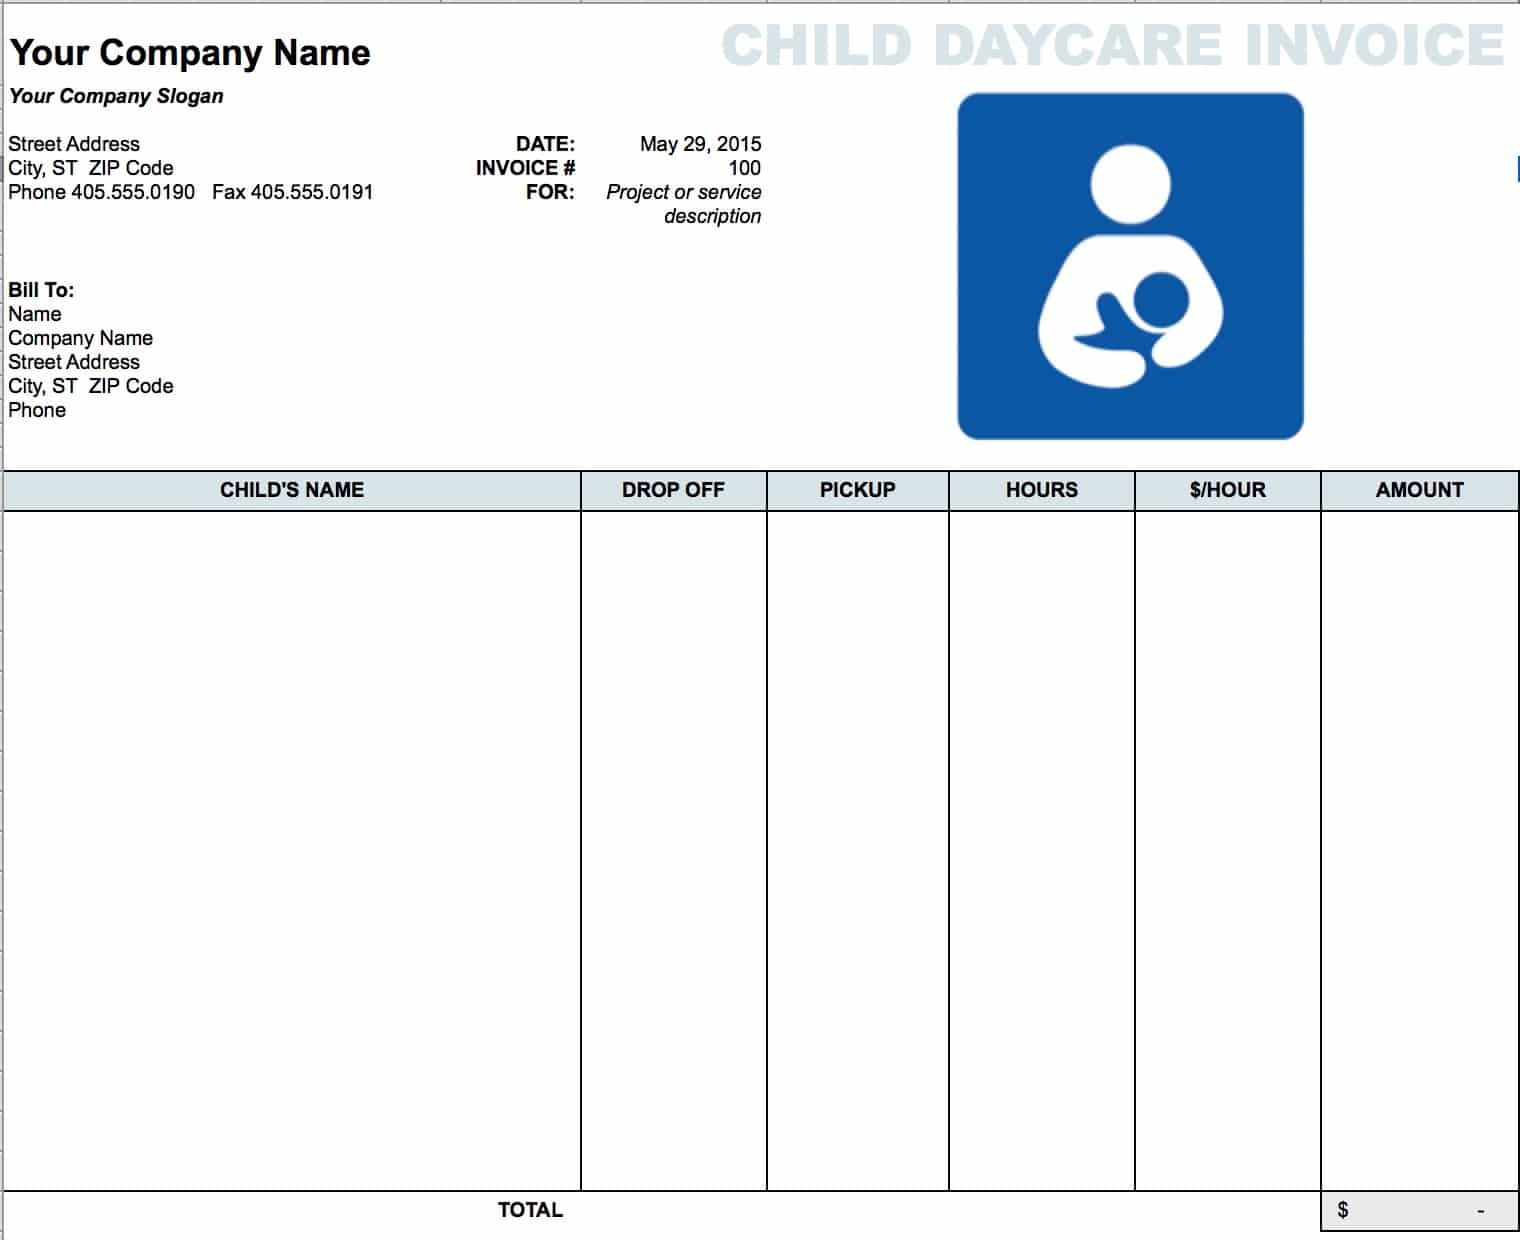 Free Daycare Child Invoice Template Excel PDF Word Doc - How to create an invoice in word for service business